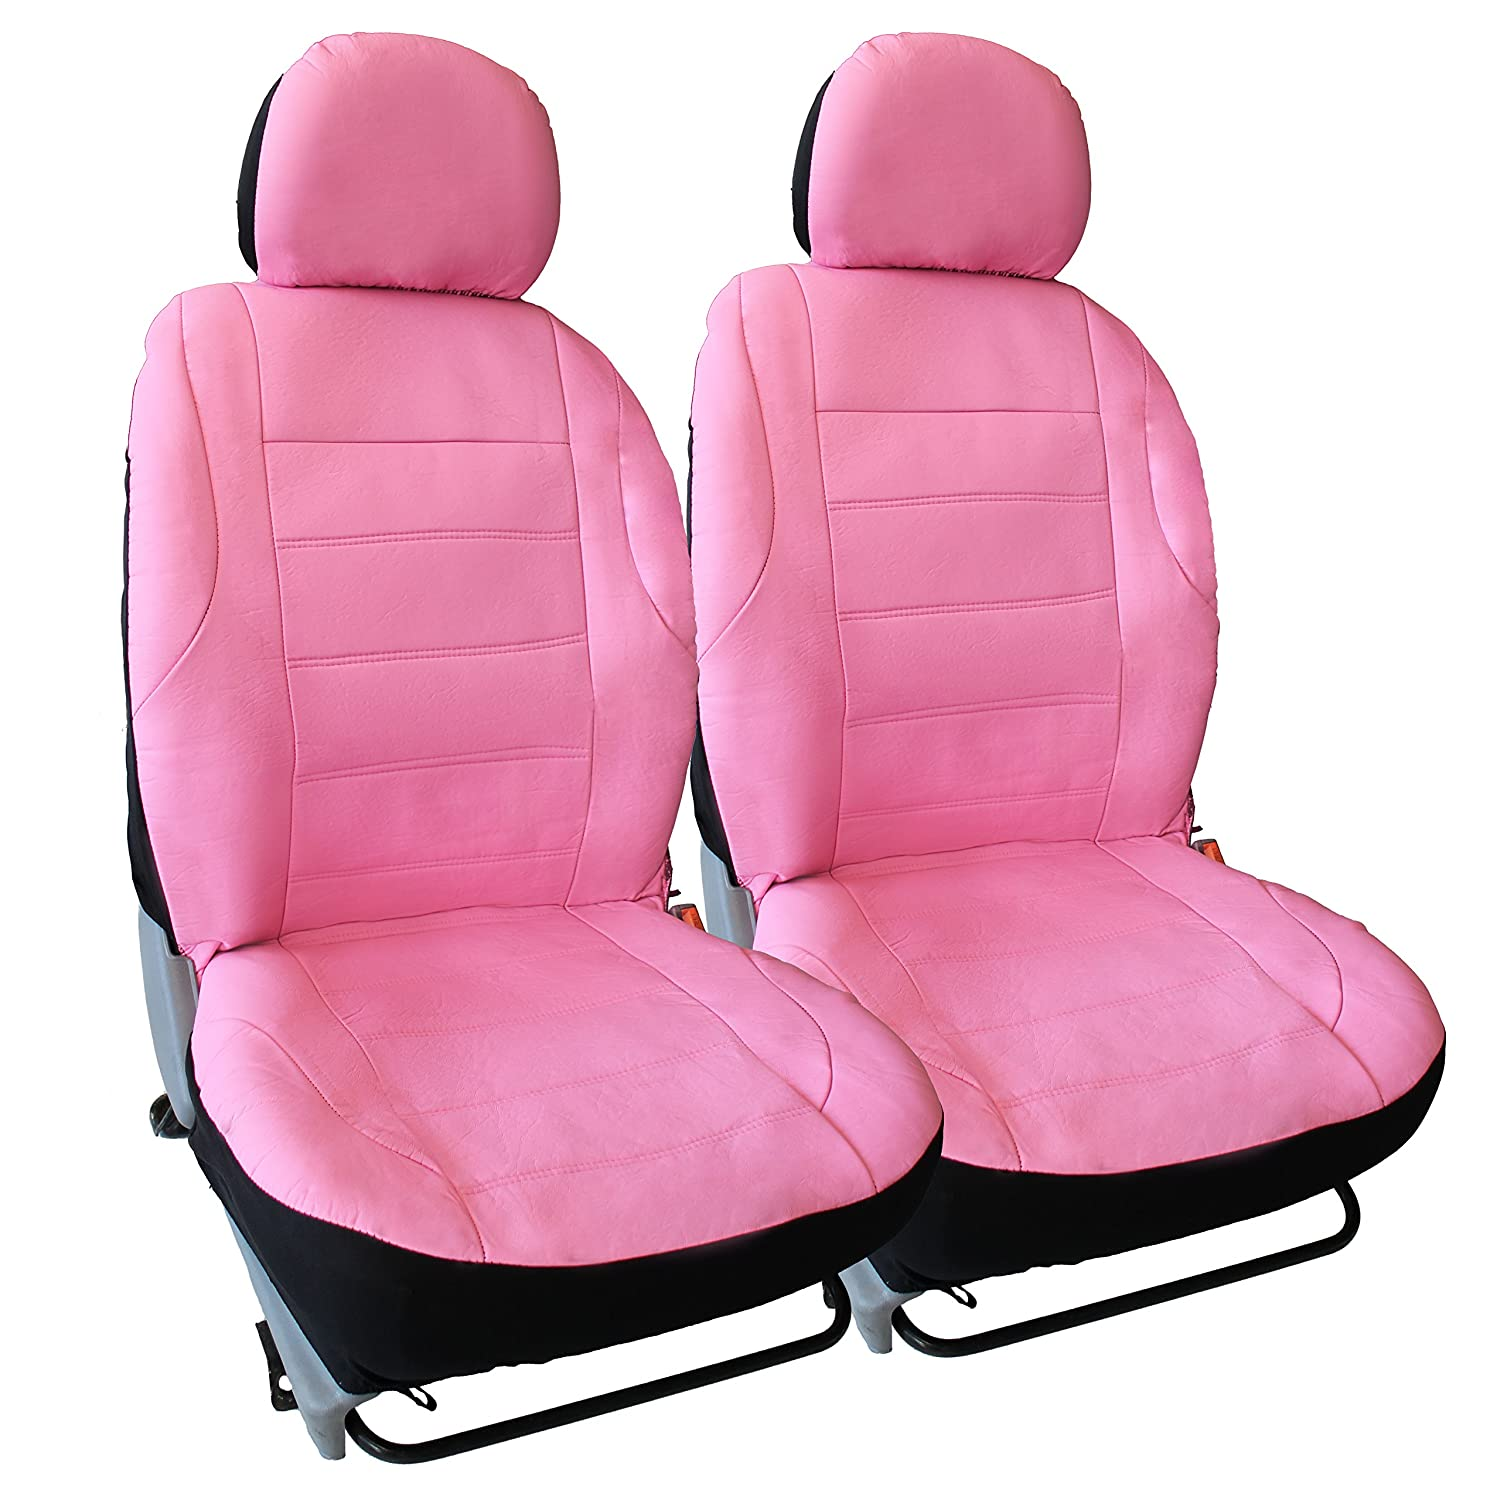 Audi A4 Full Set of Luxury PINK//BLACK Leather Look Car Seat Covers